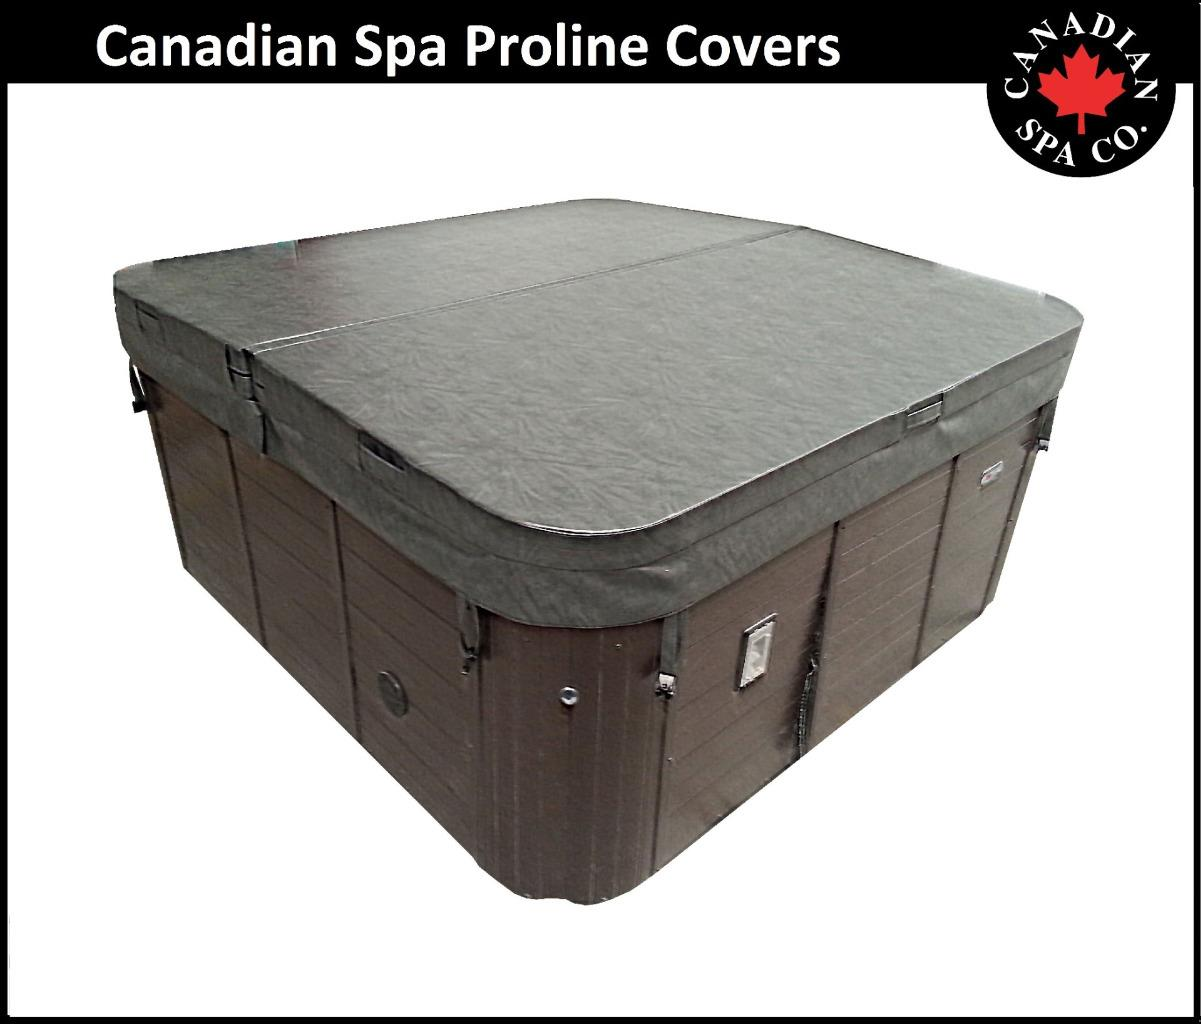 canadian spa proline hot tub cover 84in x 84in fast. Black Bedroom Furniture Sets. Home Design Ideas